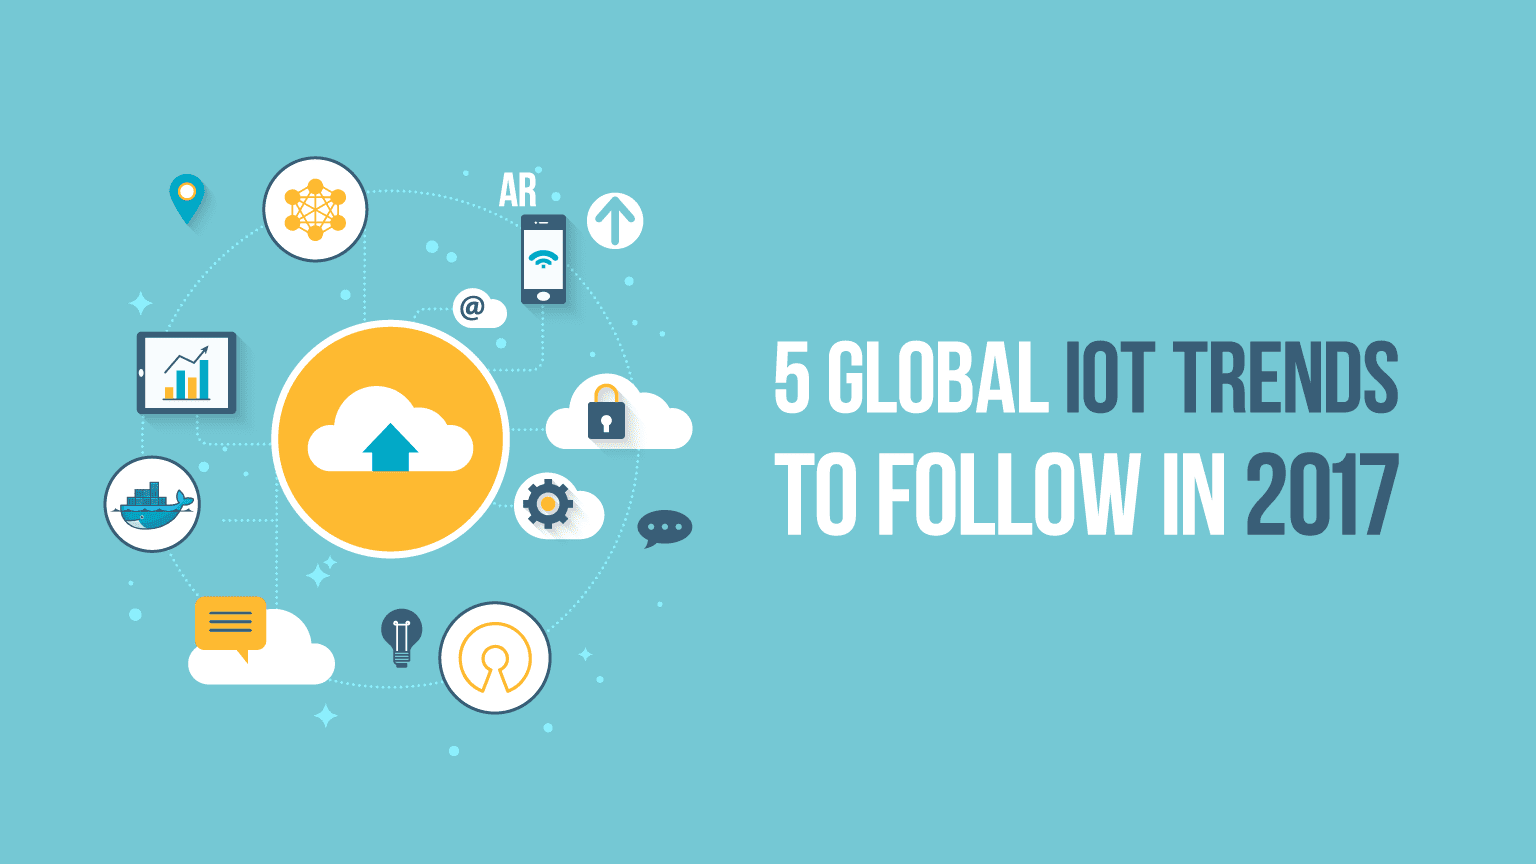 5 global IoT trends to follow in 2017